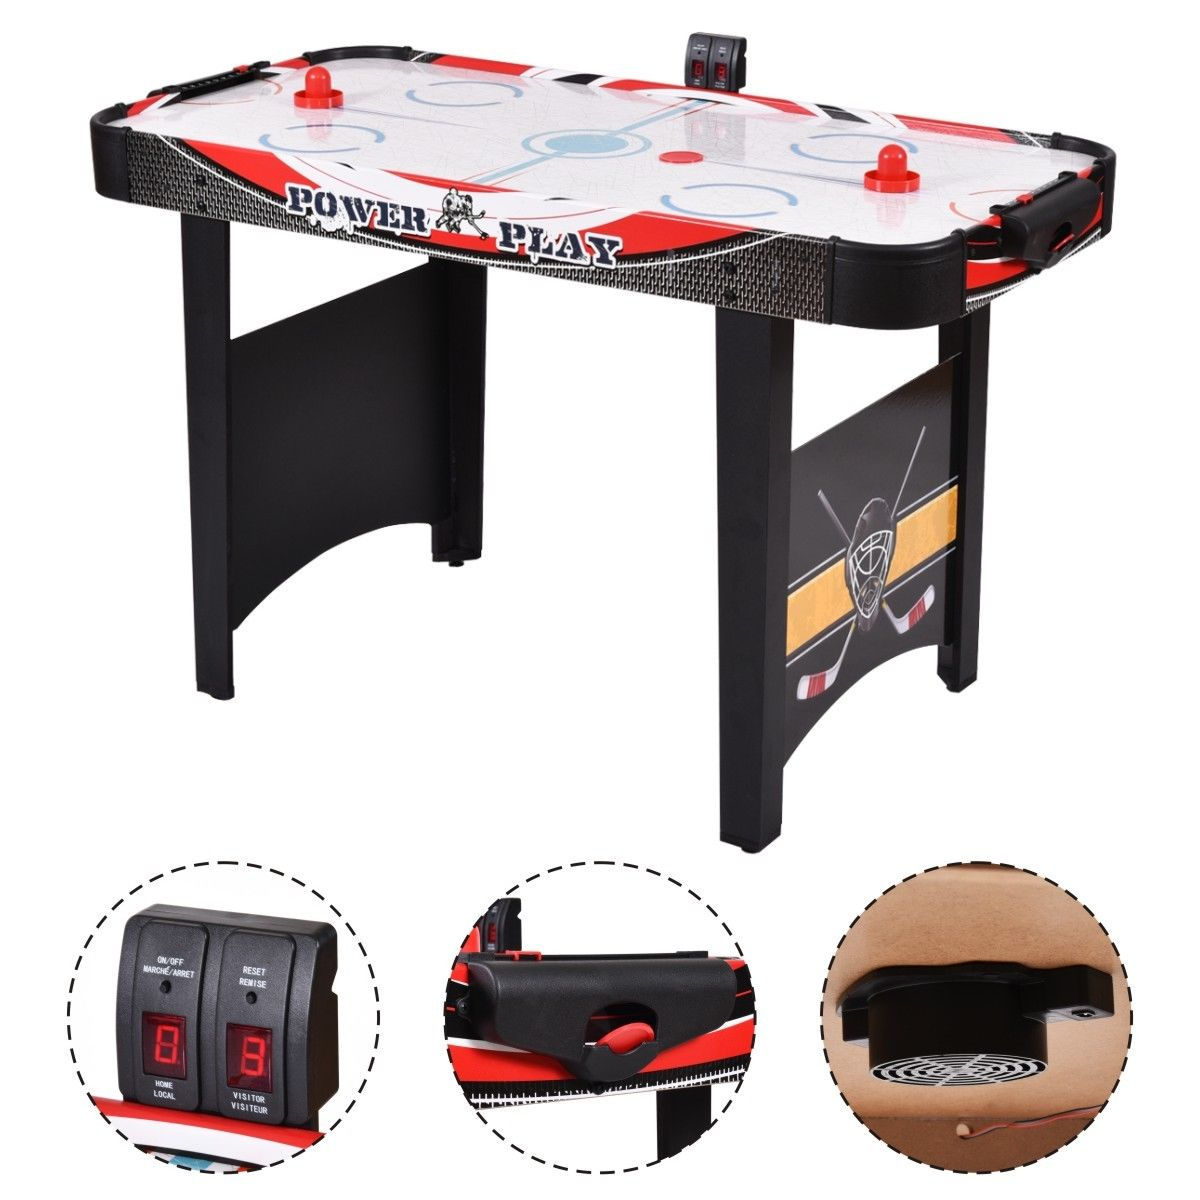 Costway 48u0027u0027Air Powered Hockey Table Indoor Sports Game Electronic Scoring  Red Puck Kids